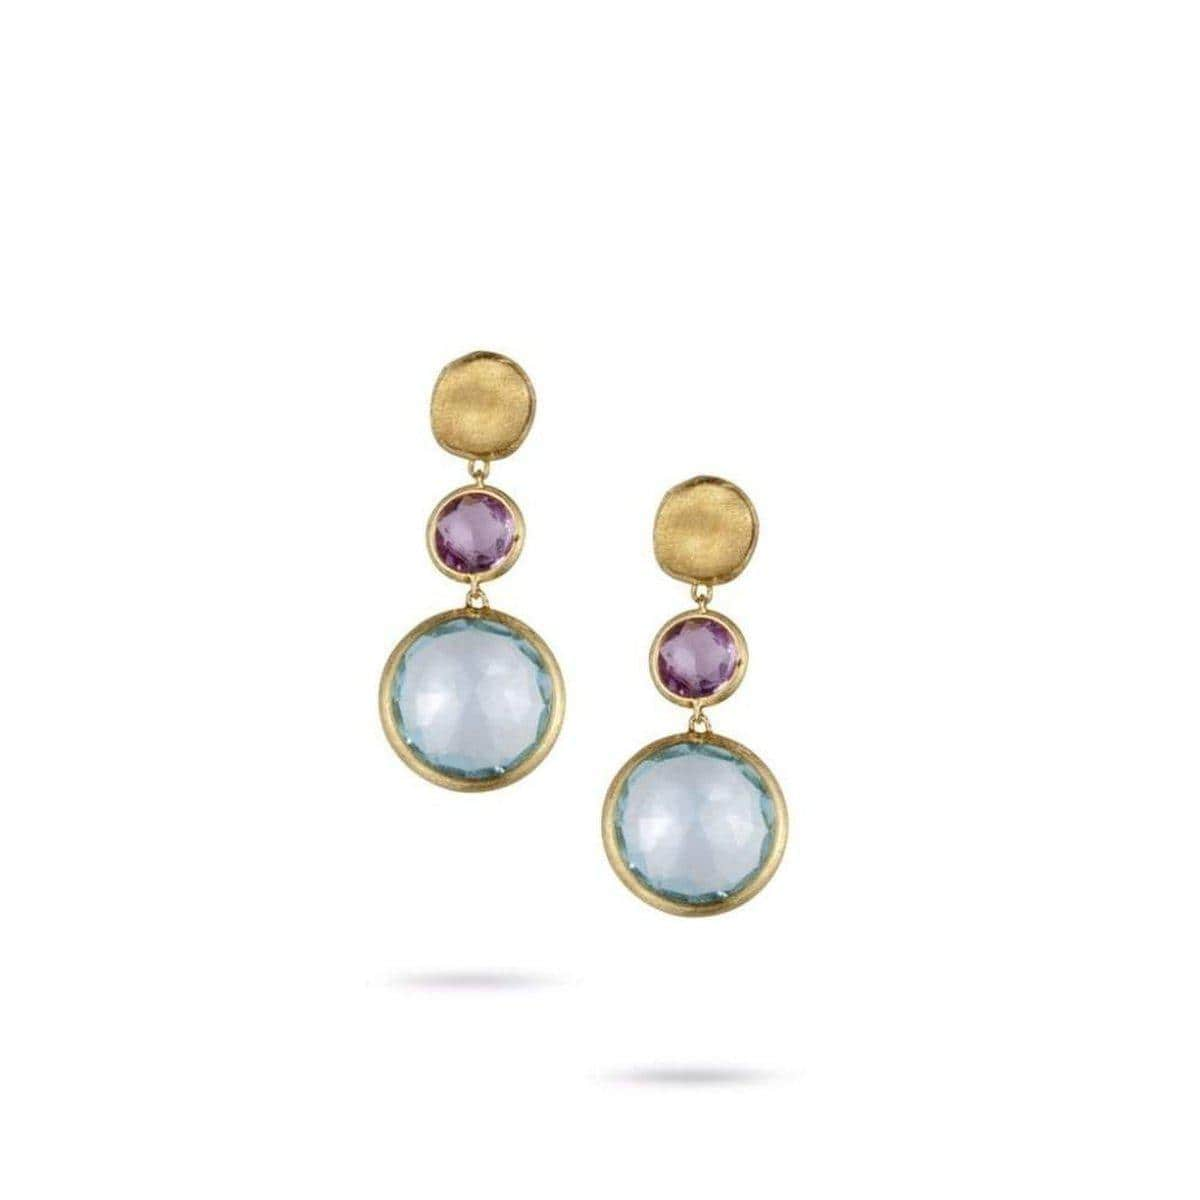 Jaipur Amethyst & Blue Topaz Earrings - OB900 A MIX52 Y-Marco Bicego-Renee Taylor Gallery